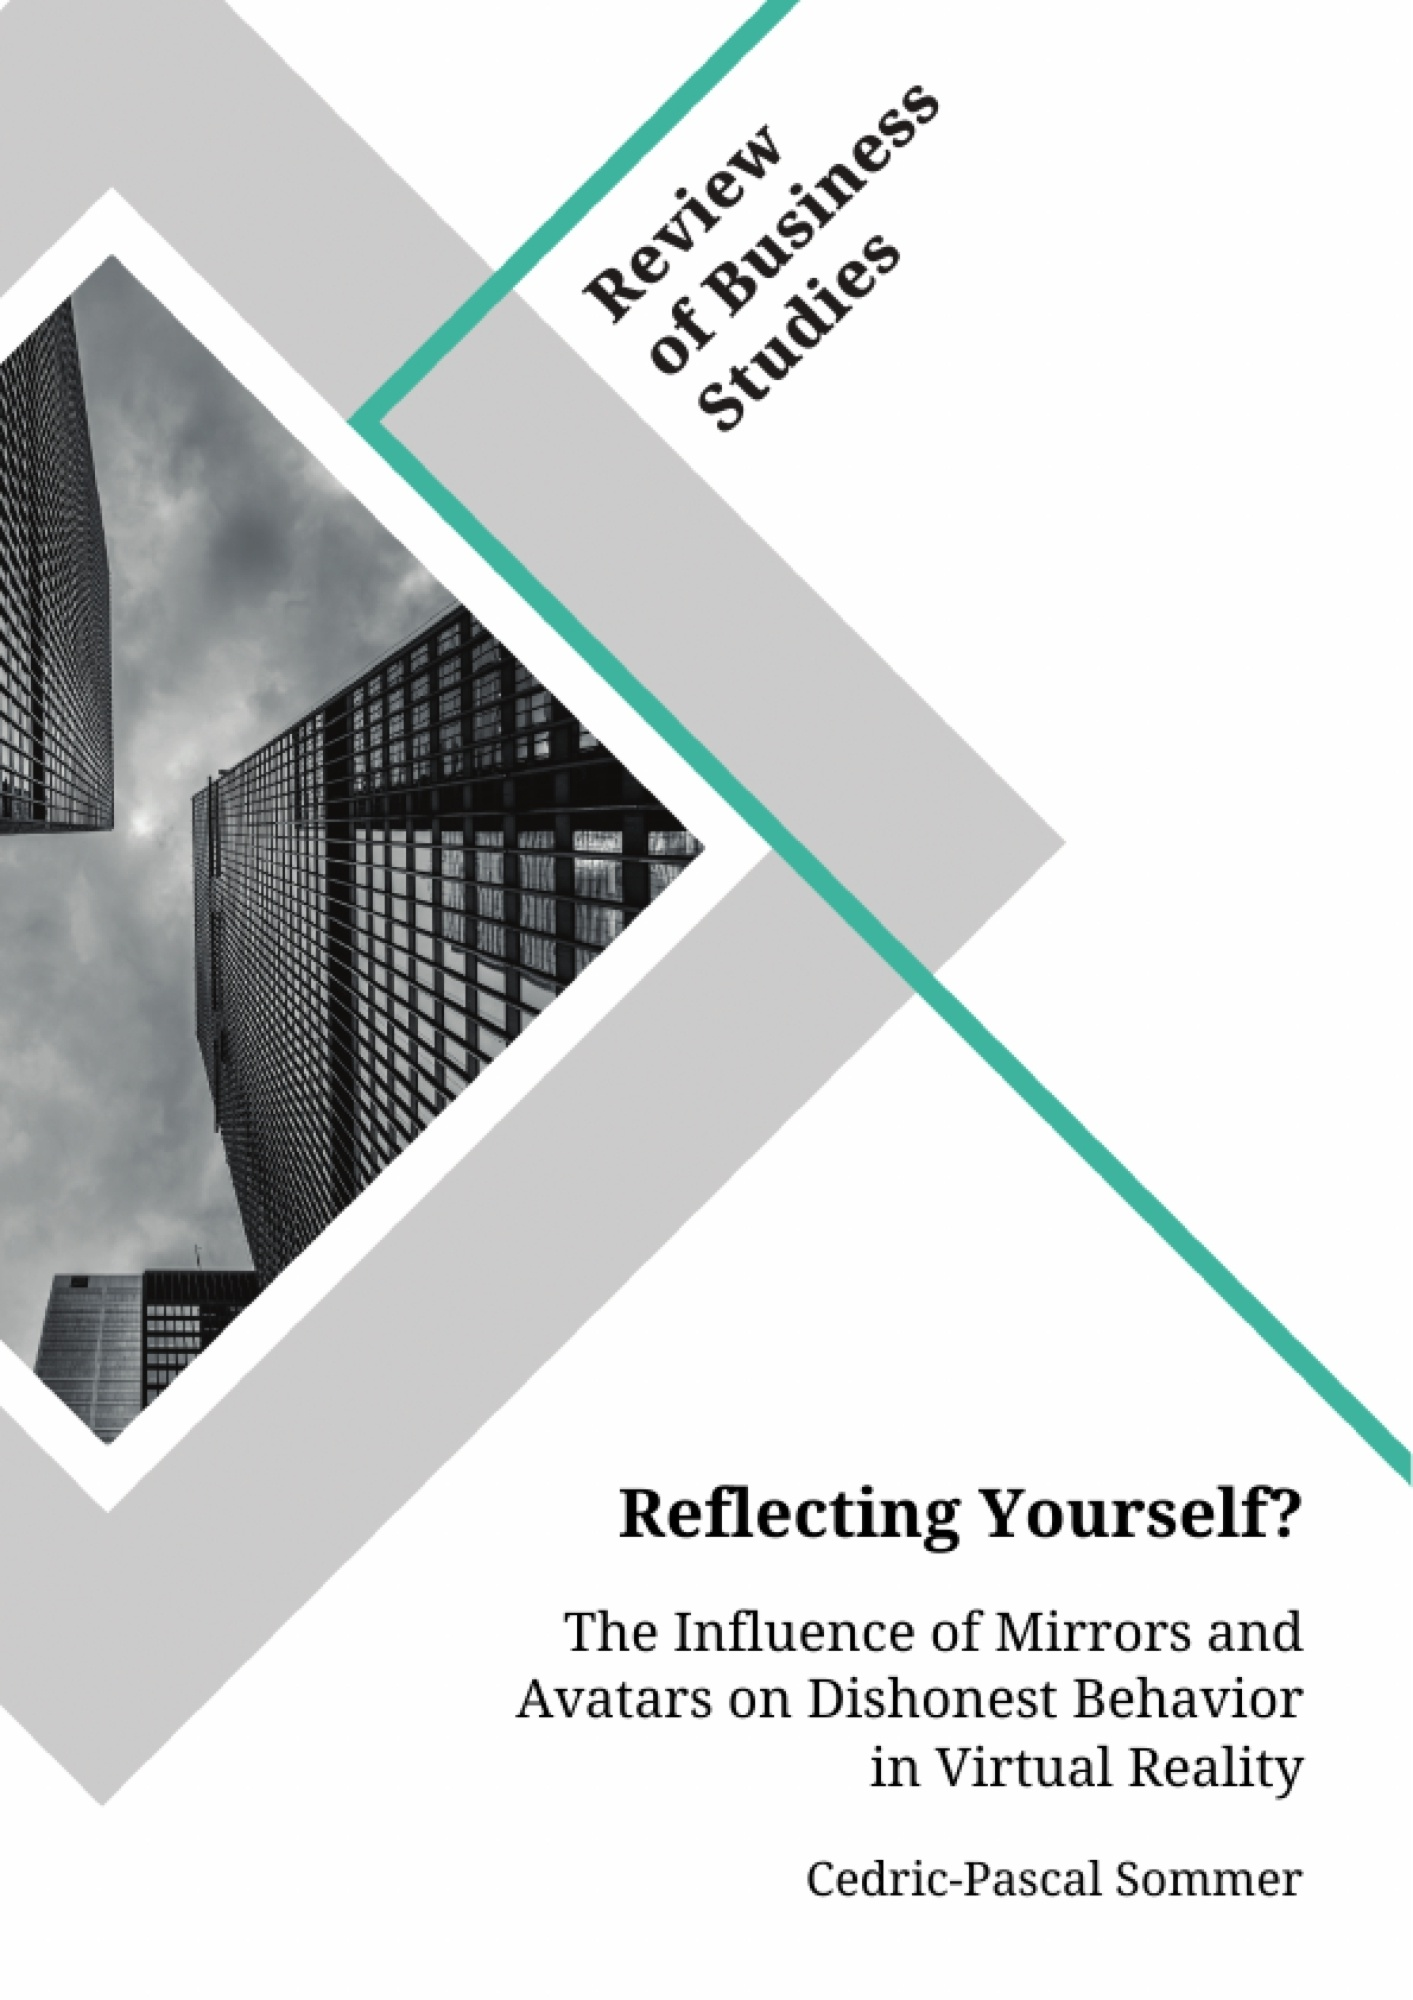 Title: Reflecting Yourself? The Influence of Mirrors and Avatars on Dishonest Behavior in Virtual Reality